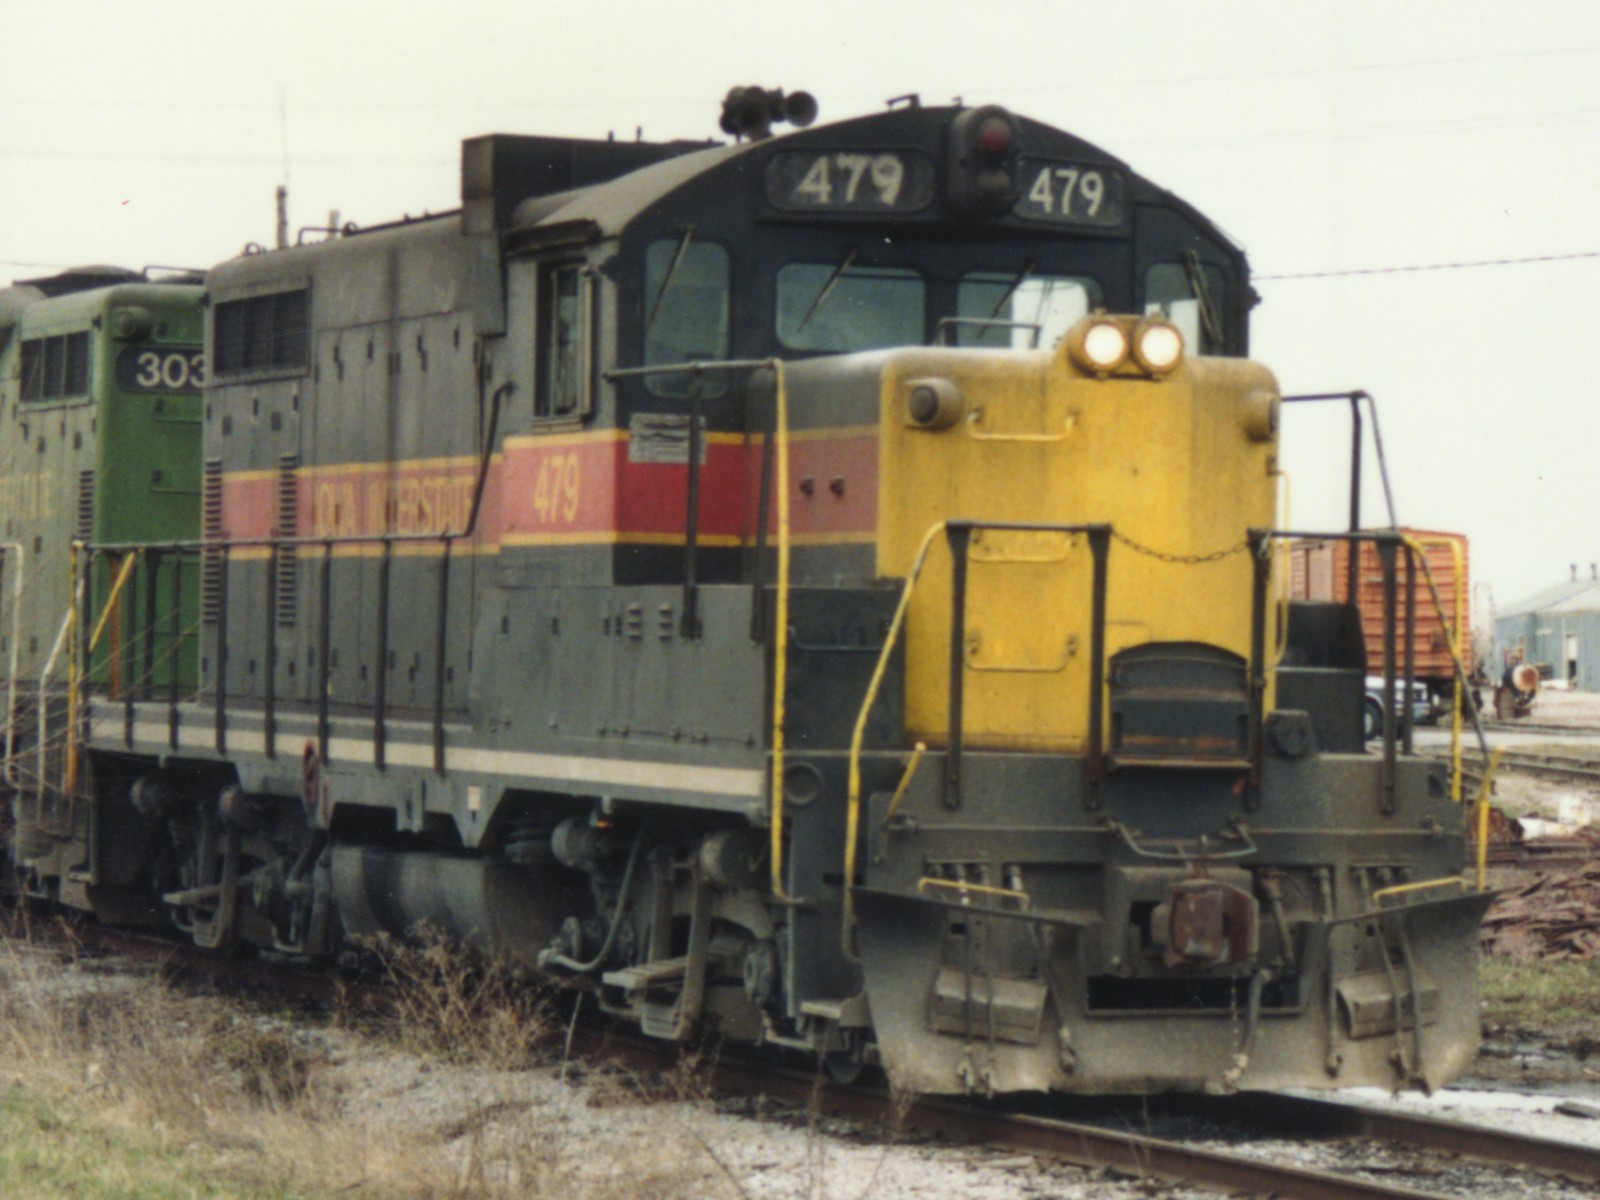 IAIS 479 in Phase IIb Altoona, IA on 1 Apr 1993